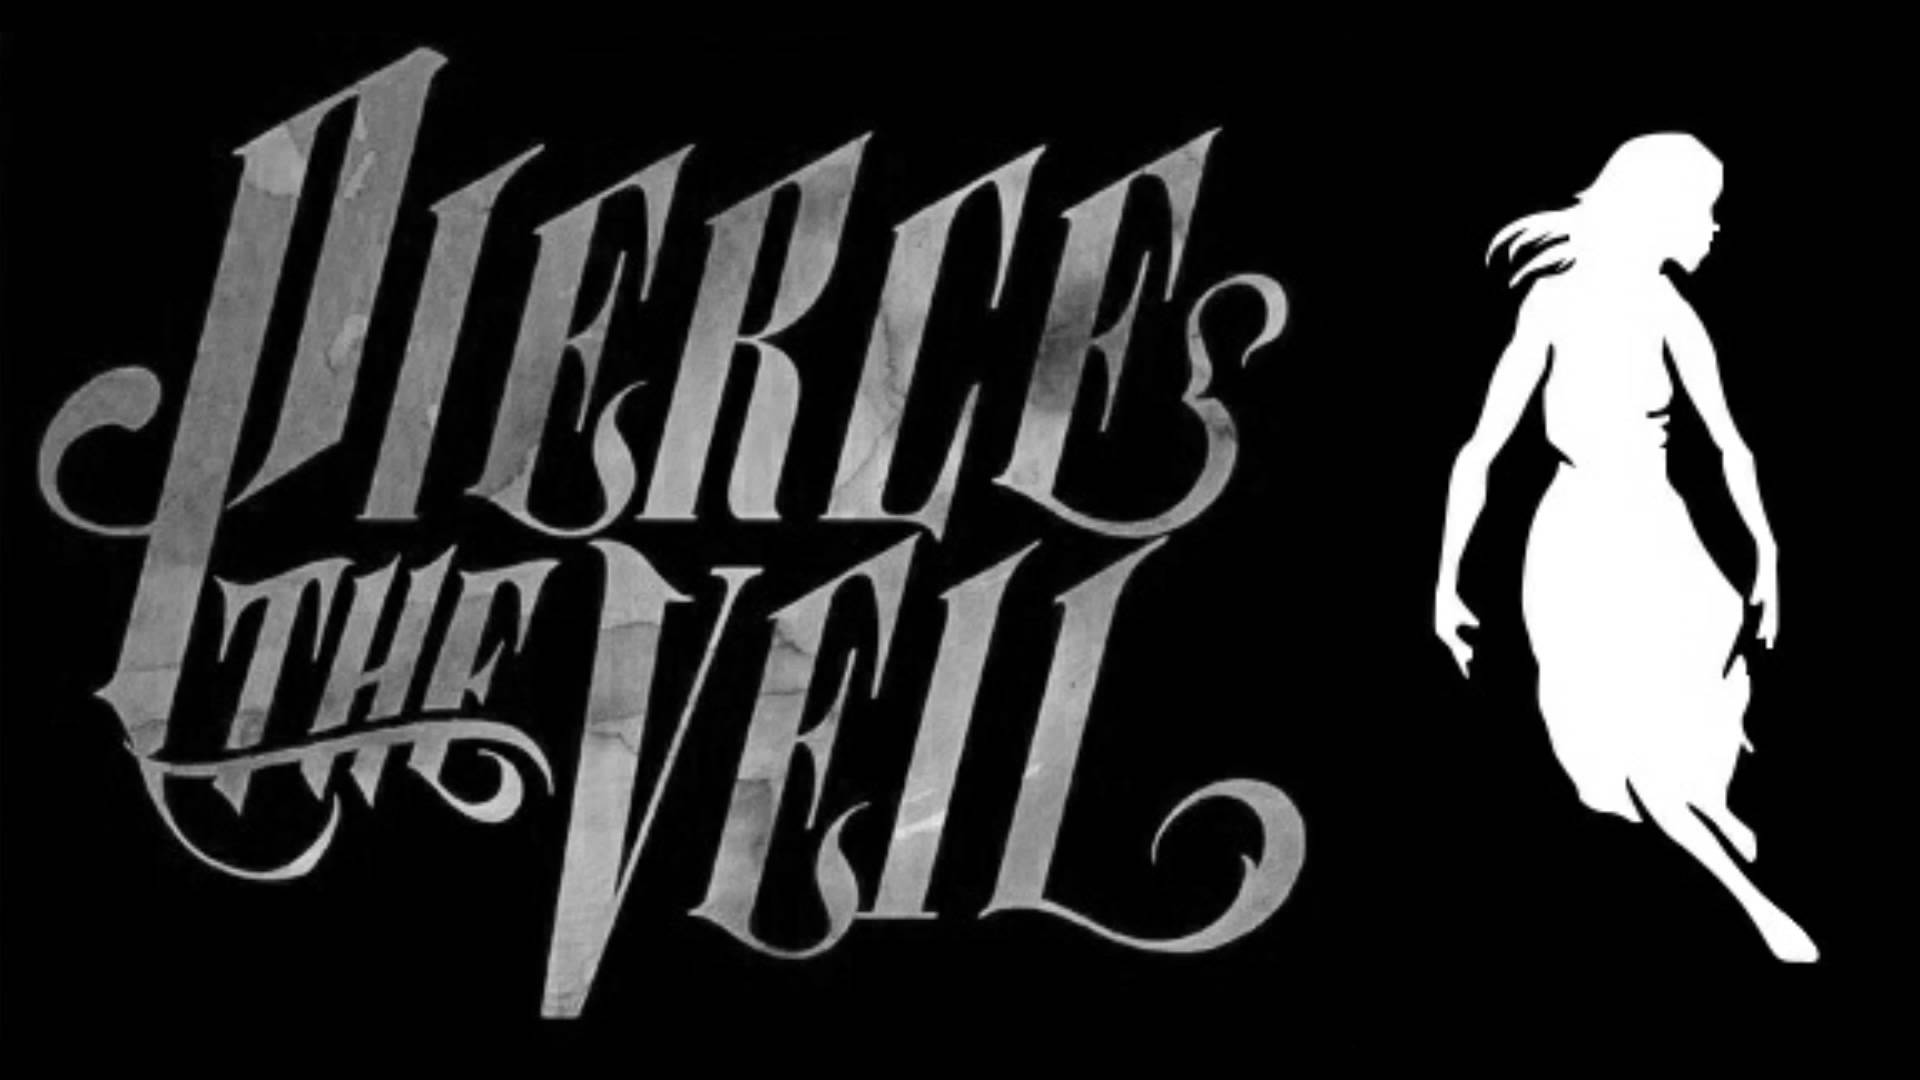 Pierce The Veil Backgrounds | Wallpapers, Backgrounds, Images, Art ...